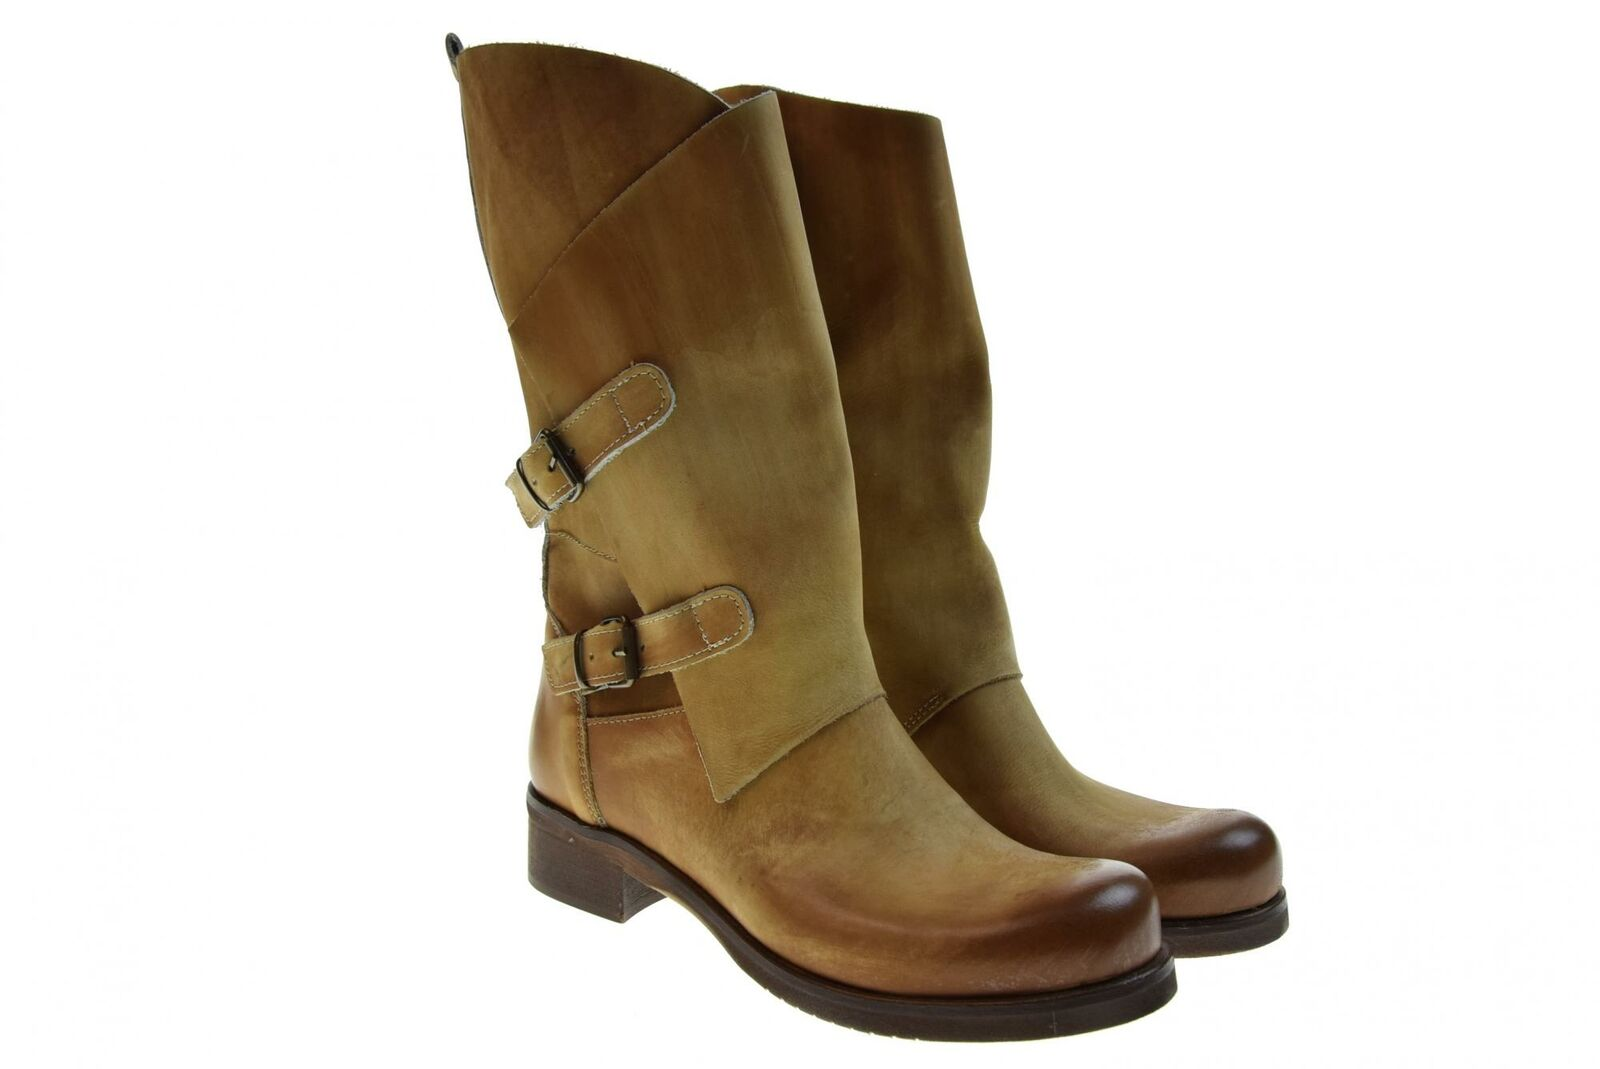 F.R.'s P19g LADIES' SHOES ANKLE BOOTS P-10 Cuoio